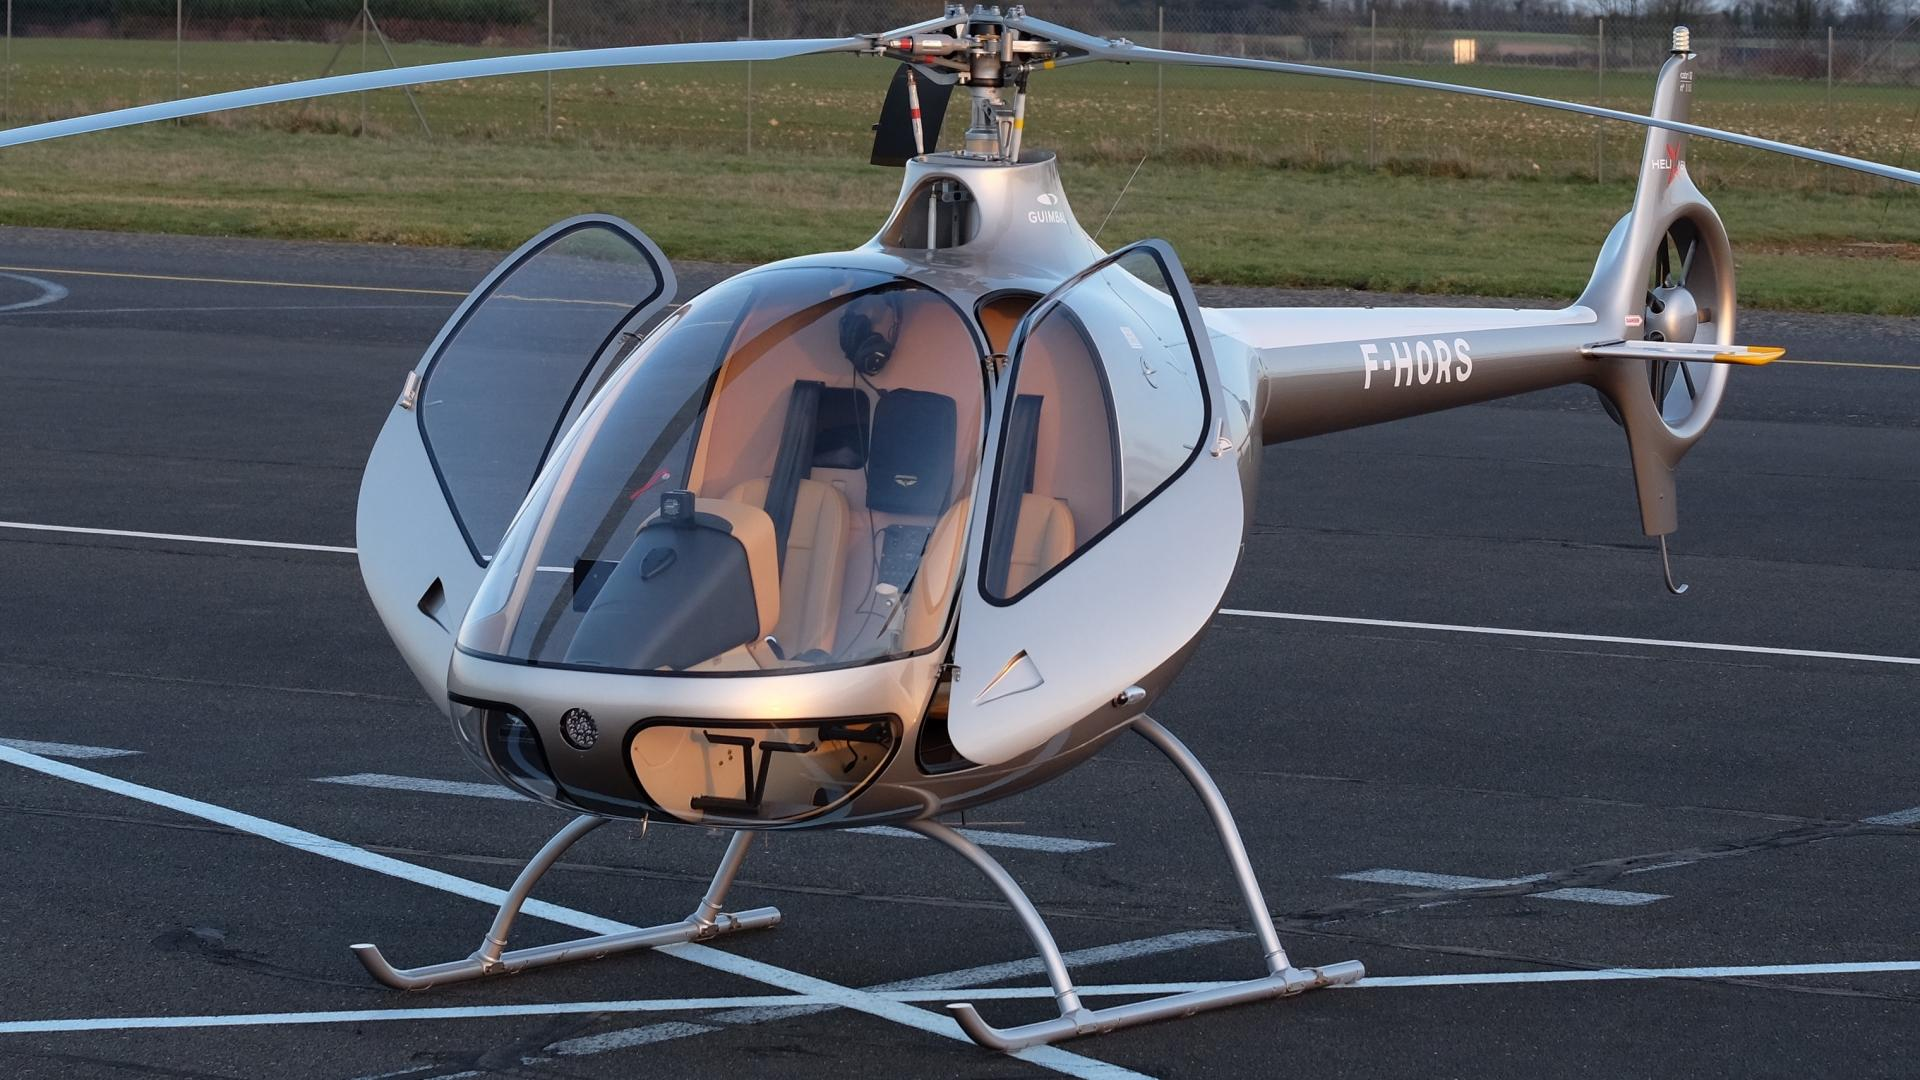 Hélicoptère helico